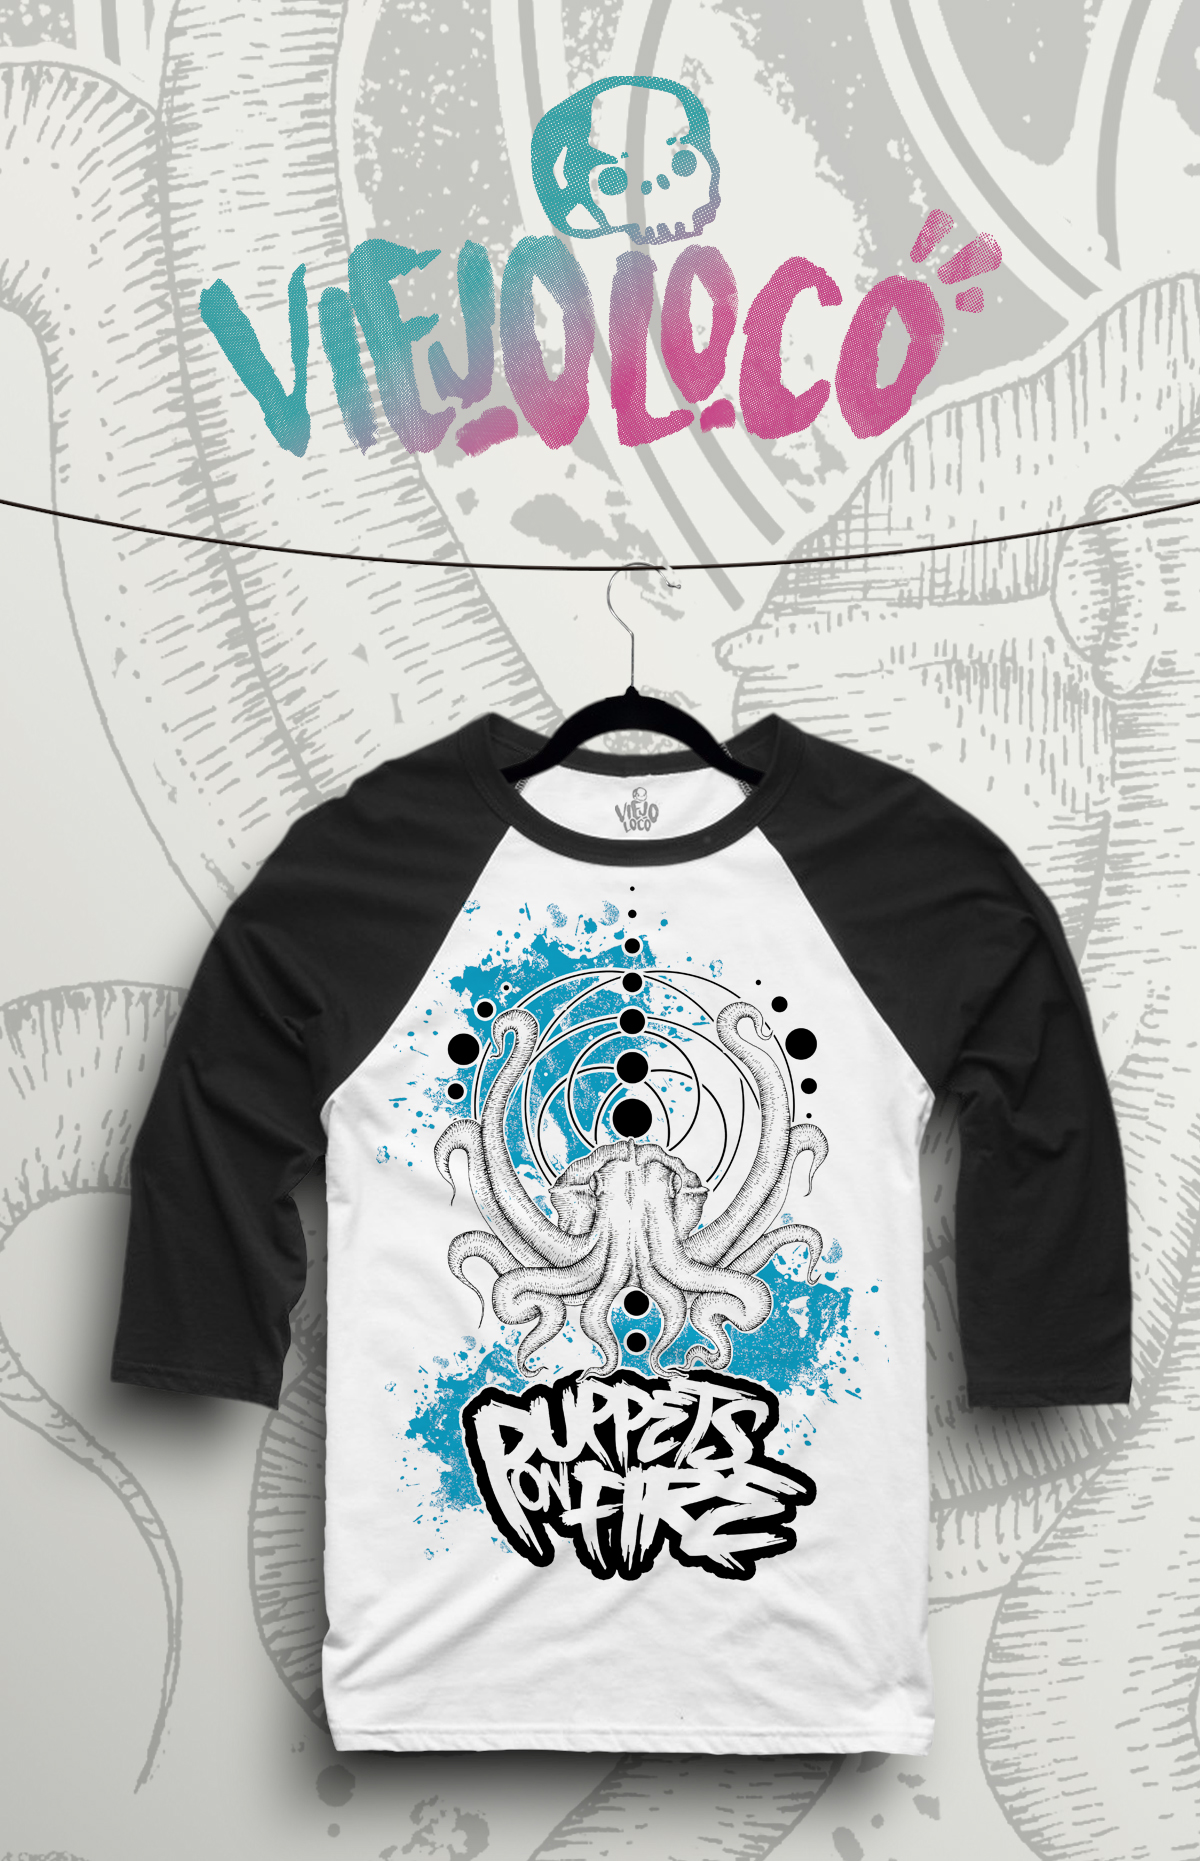 ViejoLoco.Template.shirt.pulpo